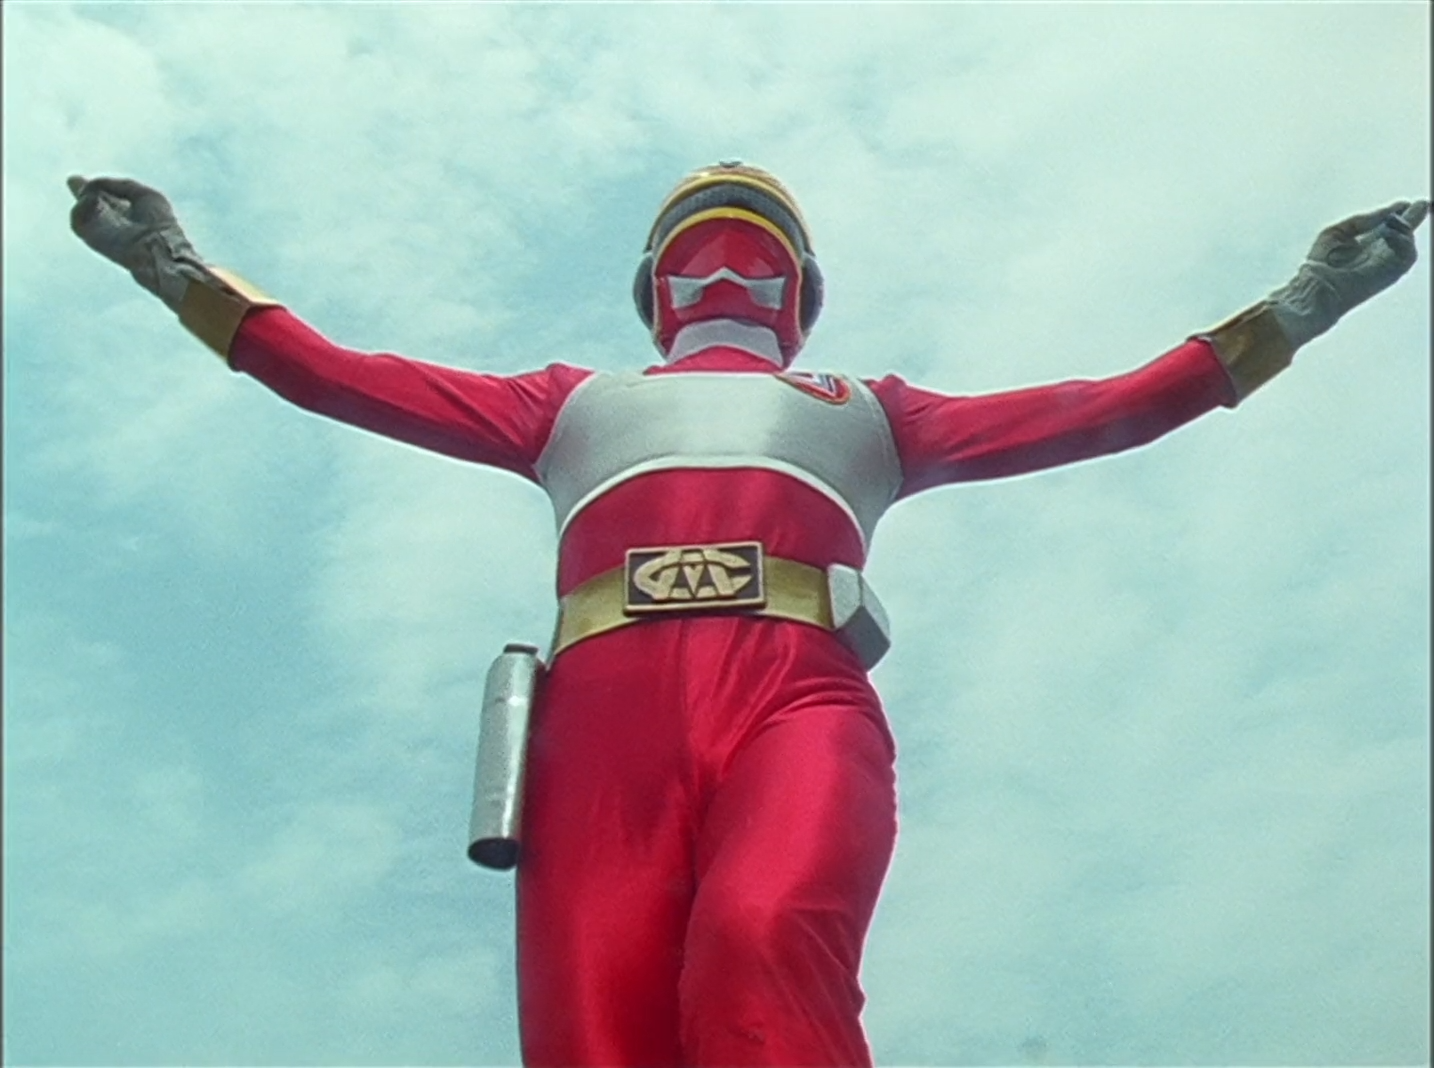 File:Change Dragon Gaoranger vs. Super Sentai.PNG